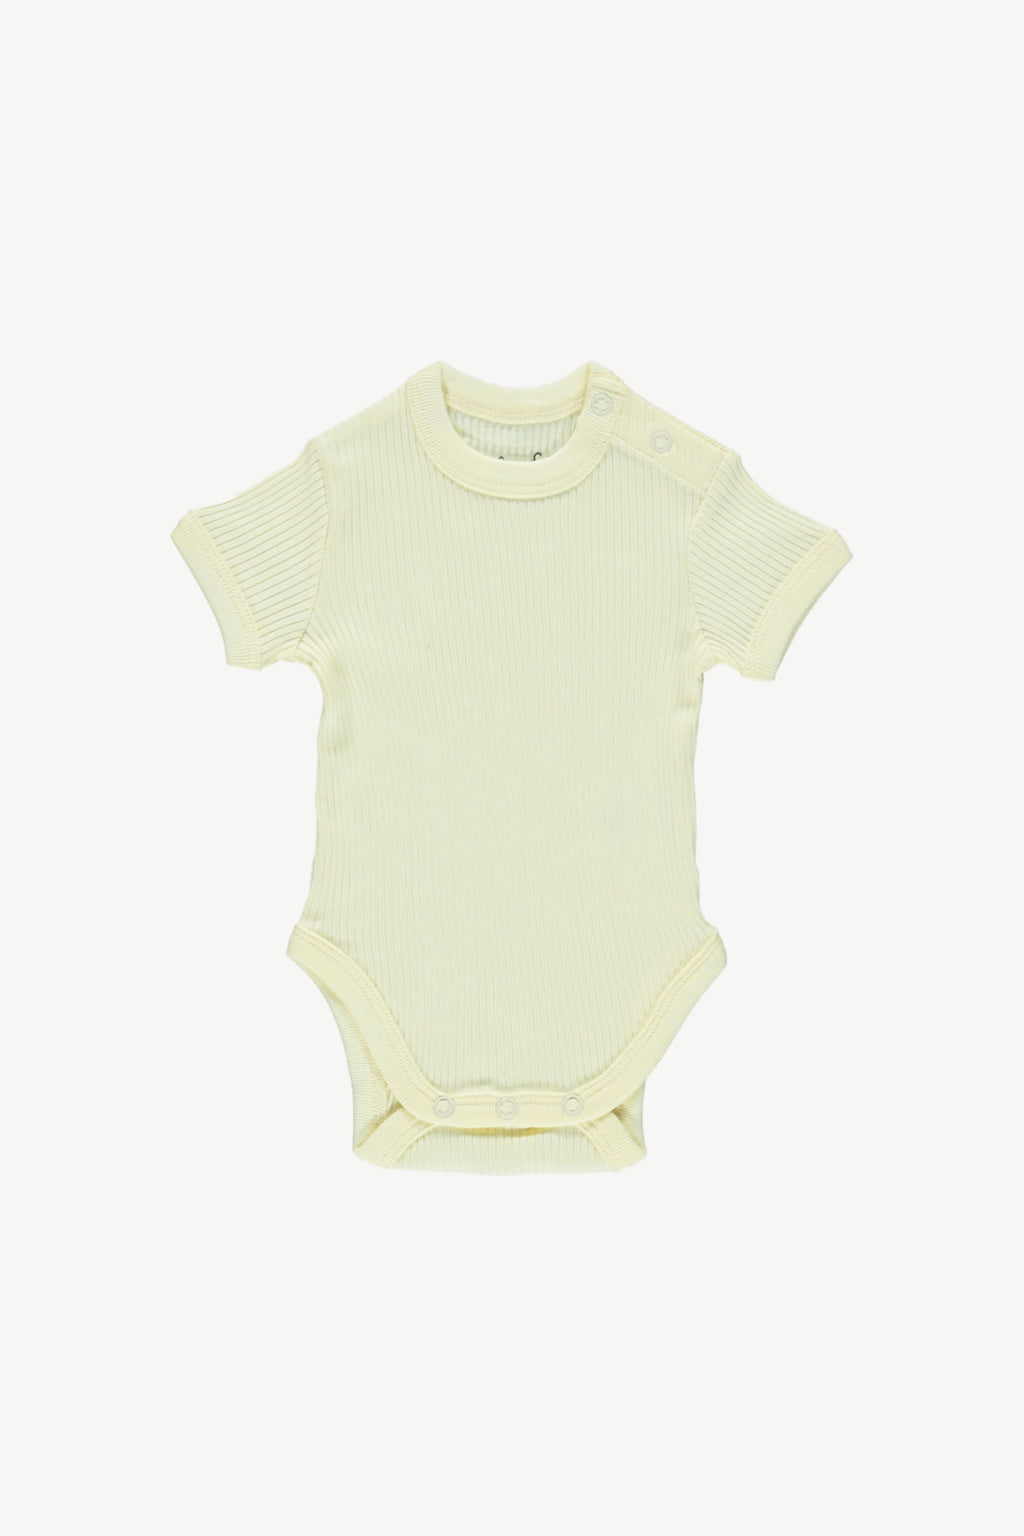 Fin and Vince - Primary Onesie (Buttercream)